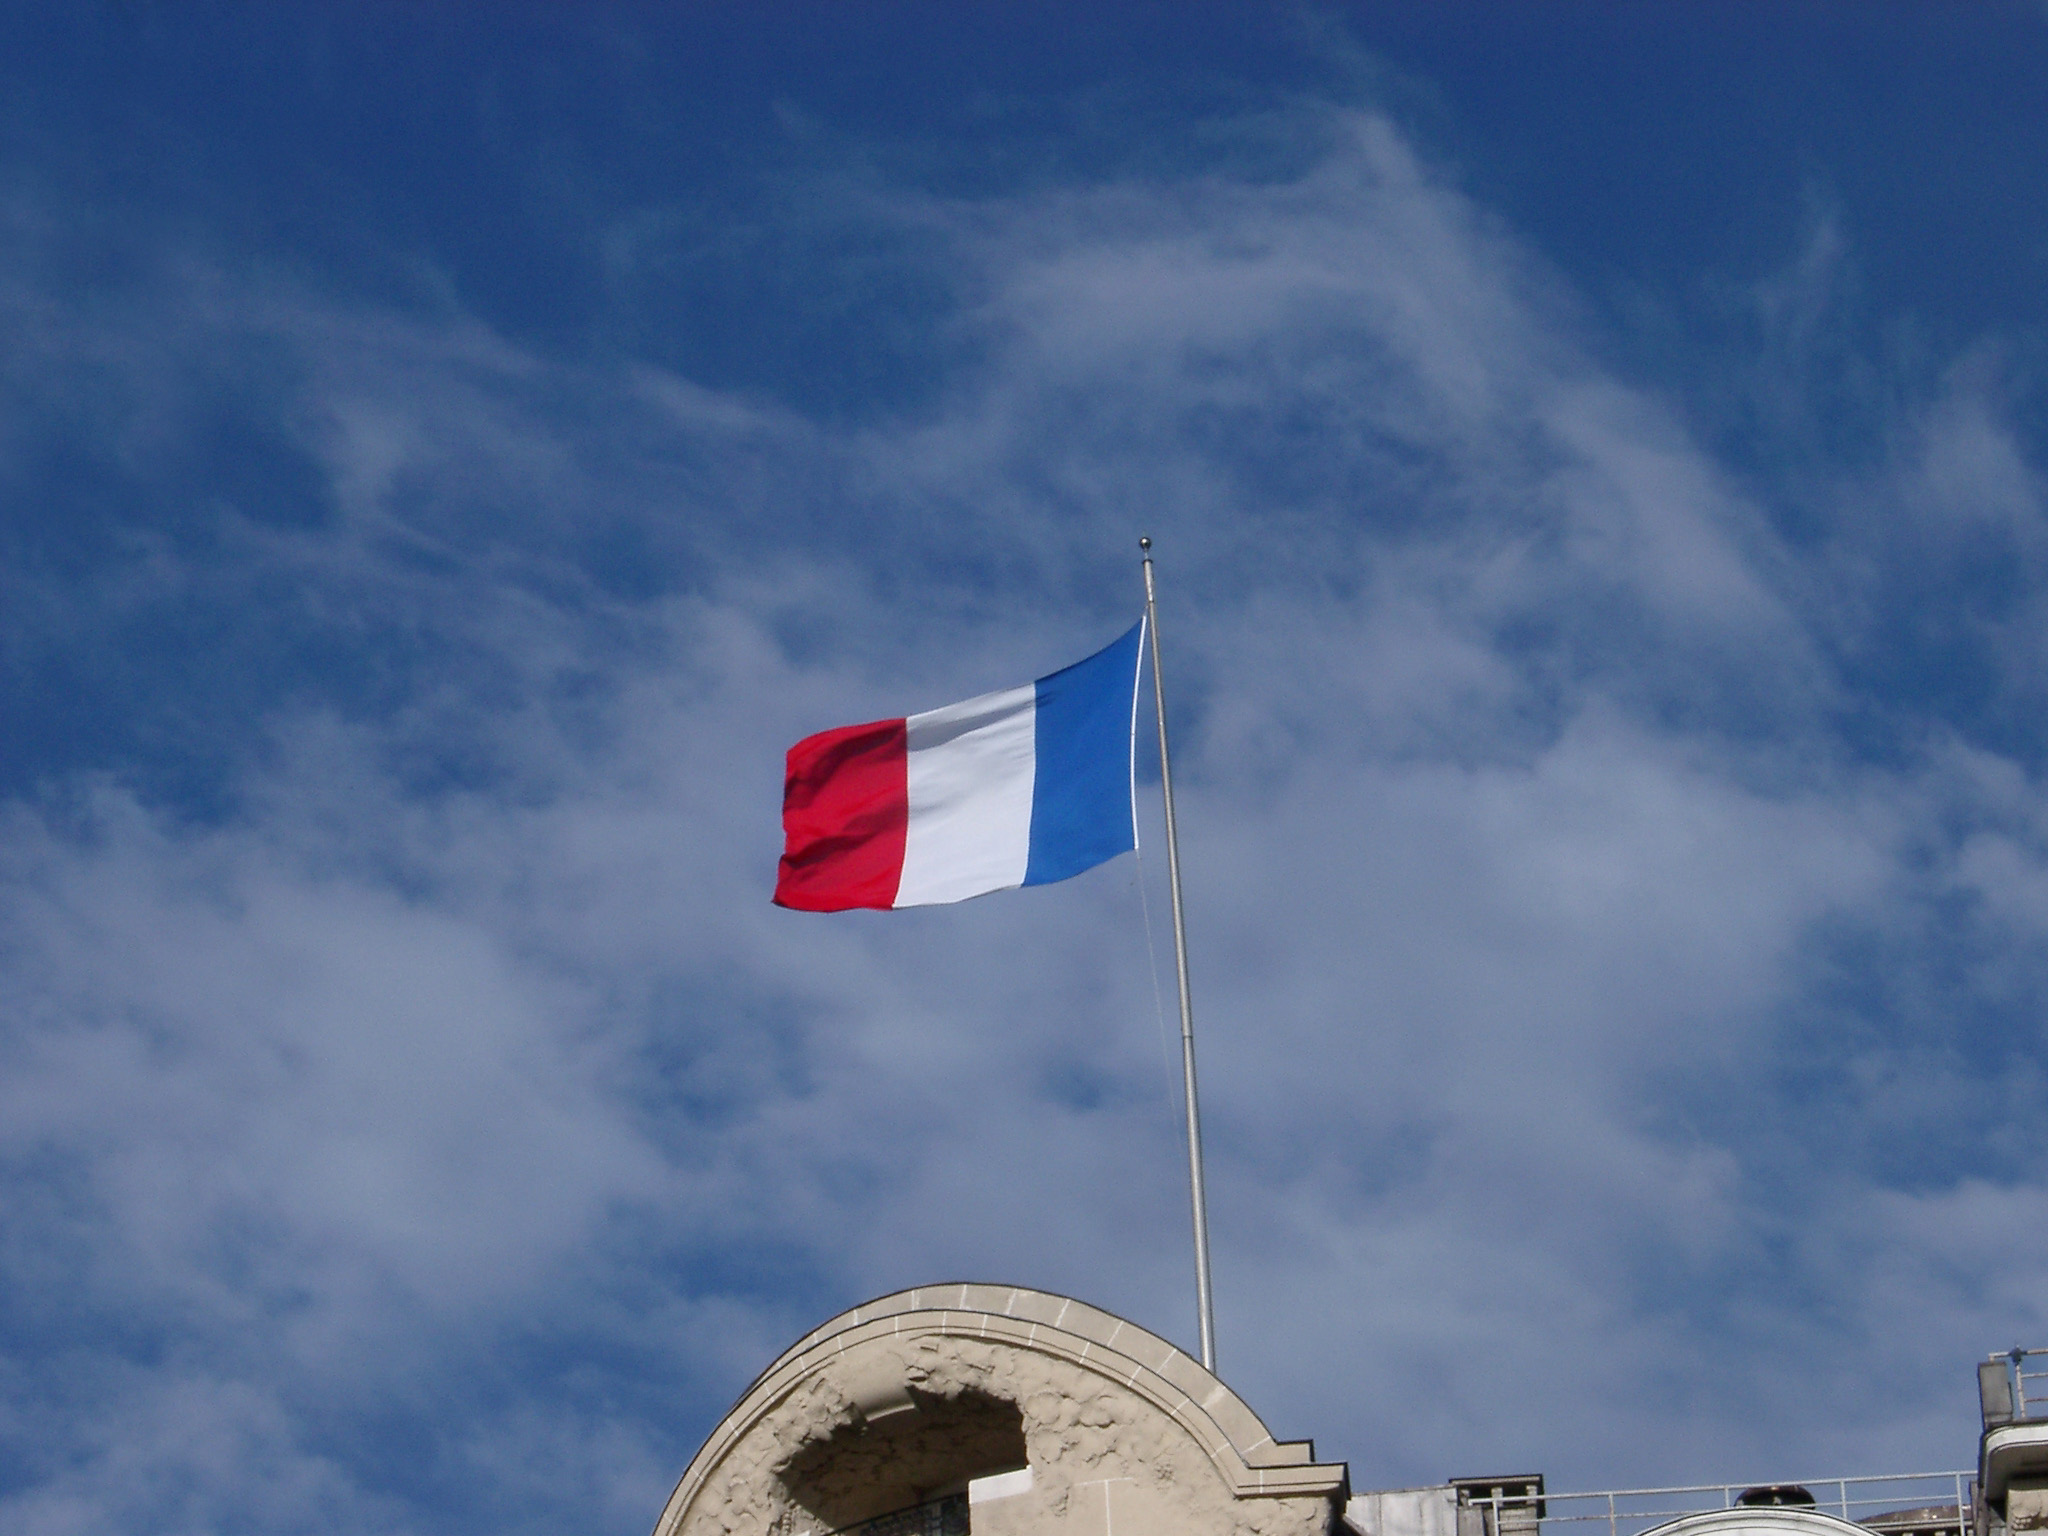 The Tricolor or French National Flag flying from a rooftop against a cloudy hazy blue sky with copyspace